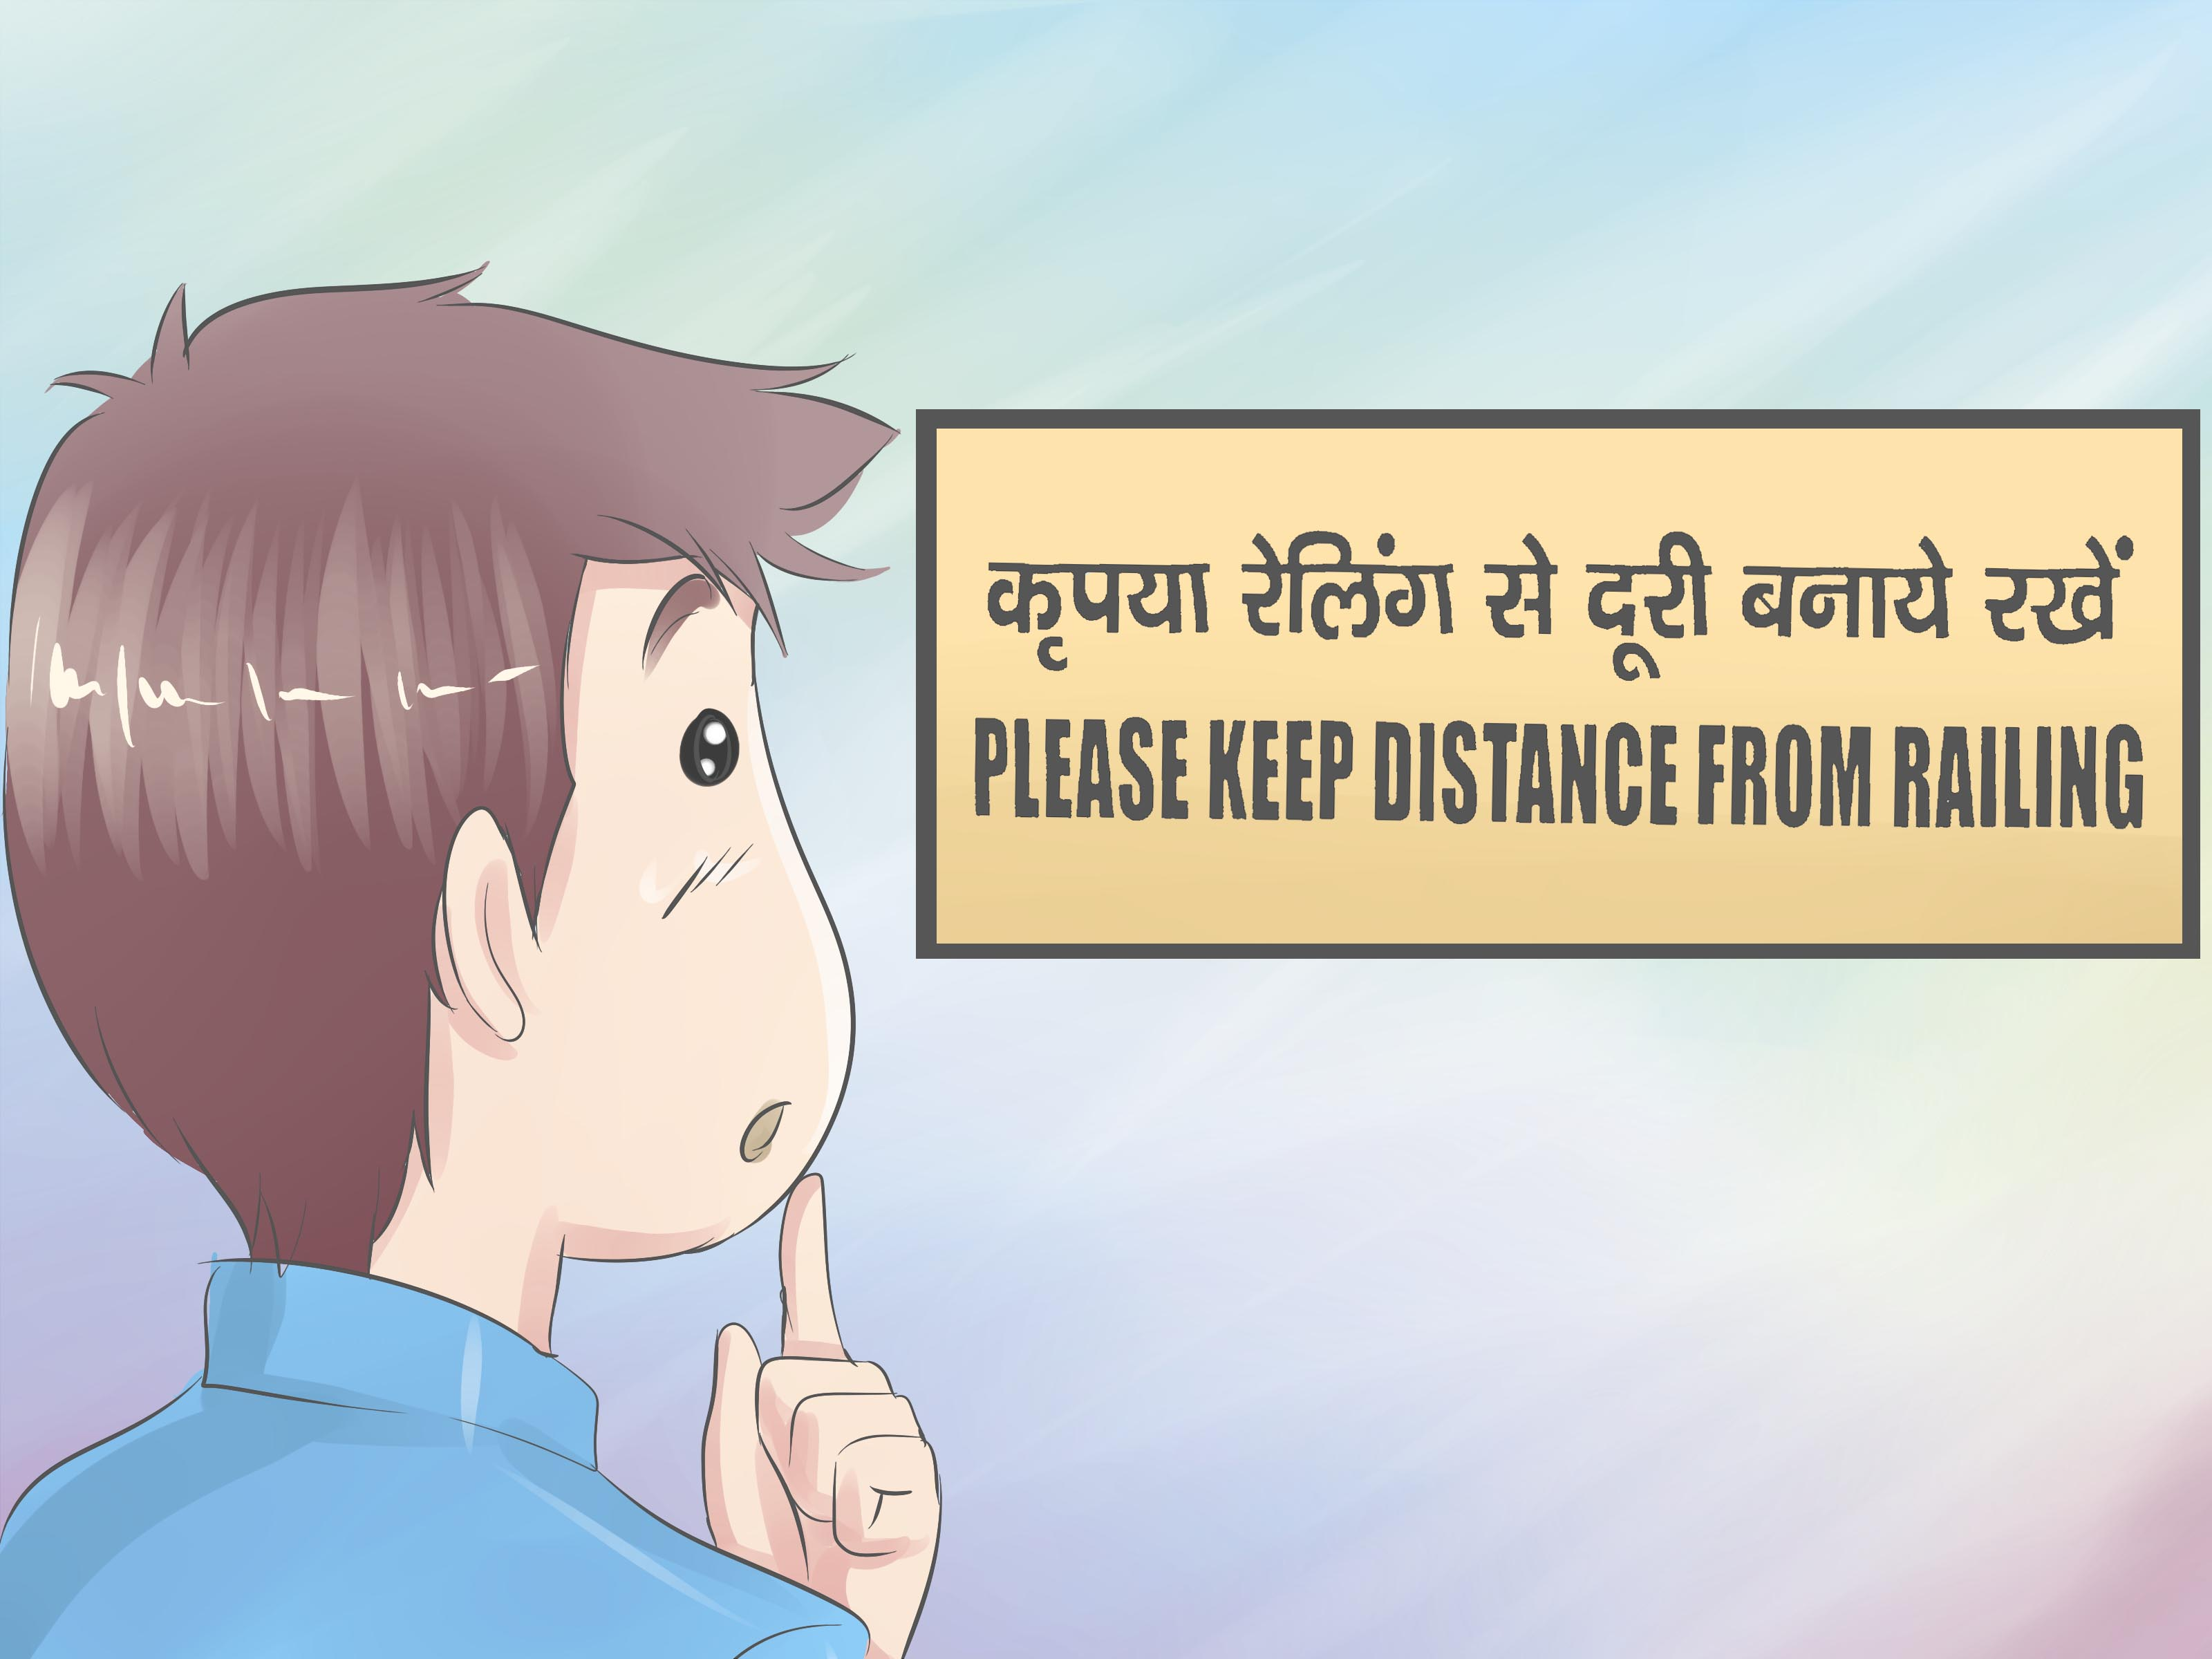 How To Speak Hindi: 7 Steps (with Pictures)